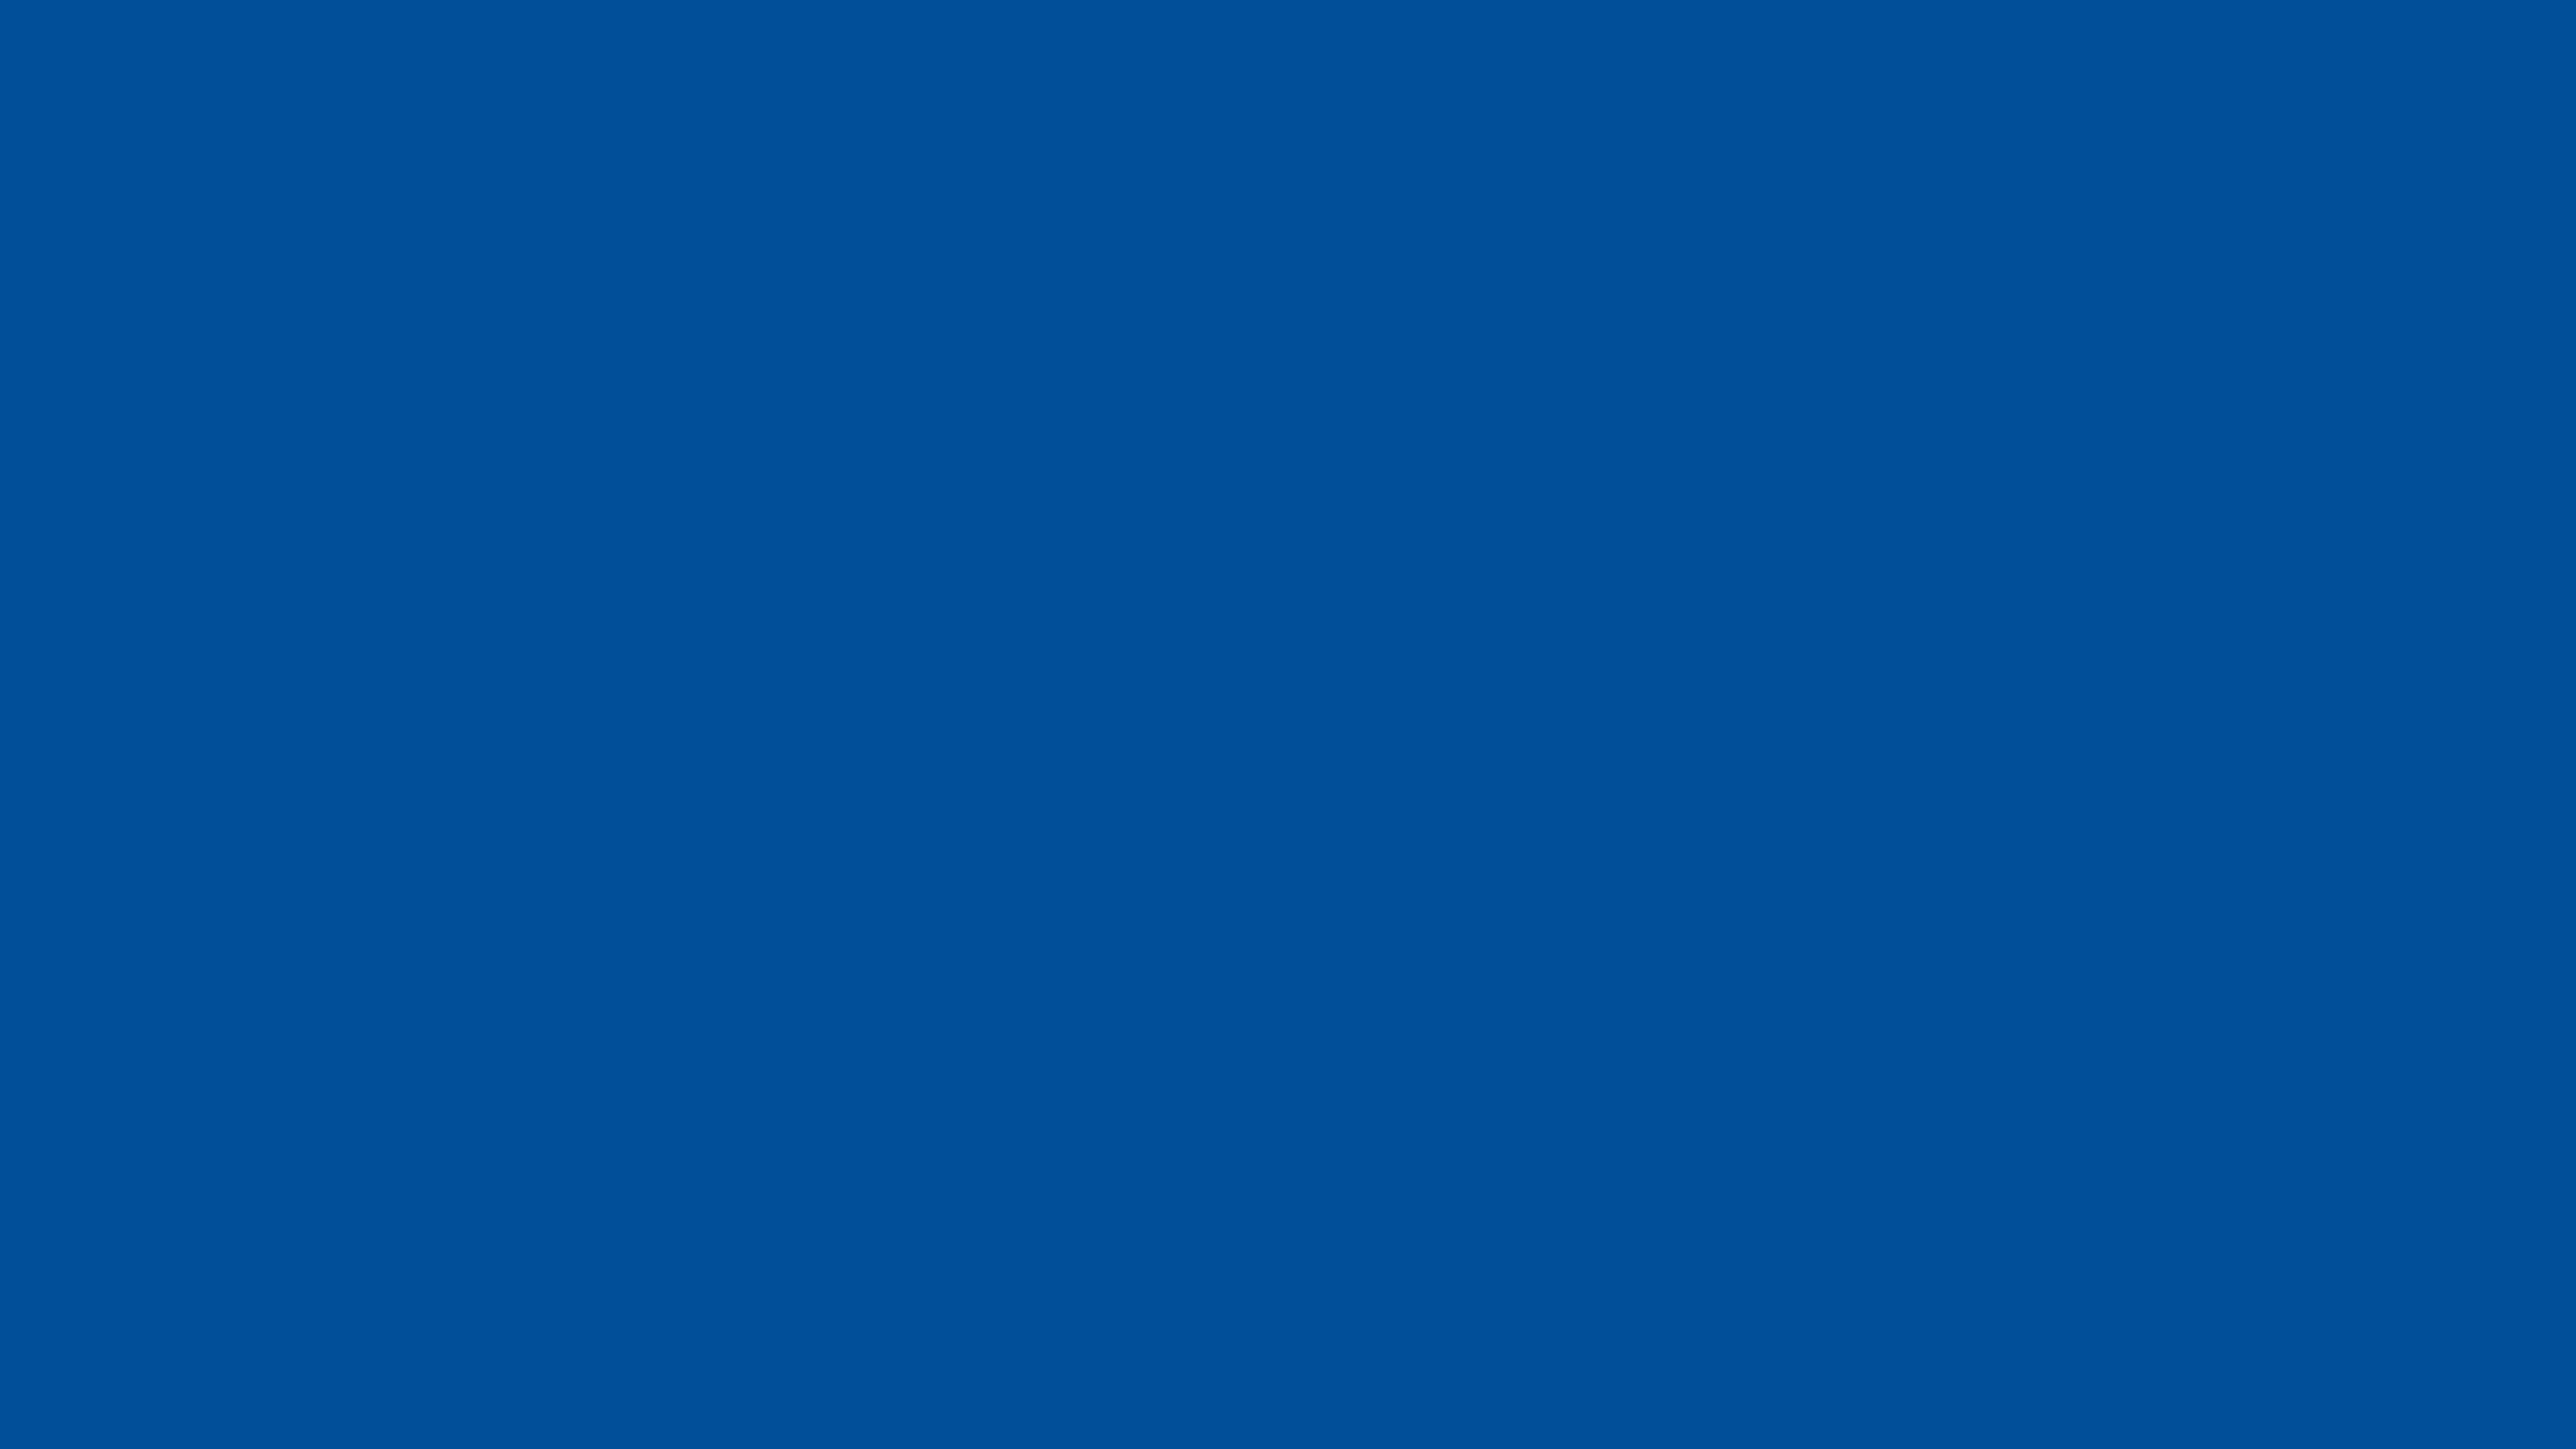 4096x2304 USAFA Blue Solid Color Background